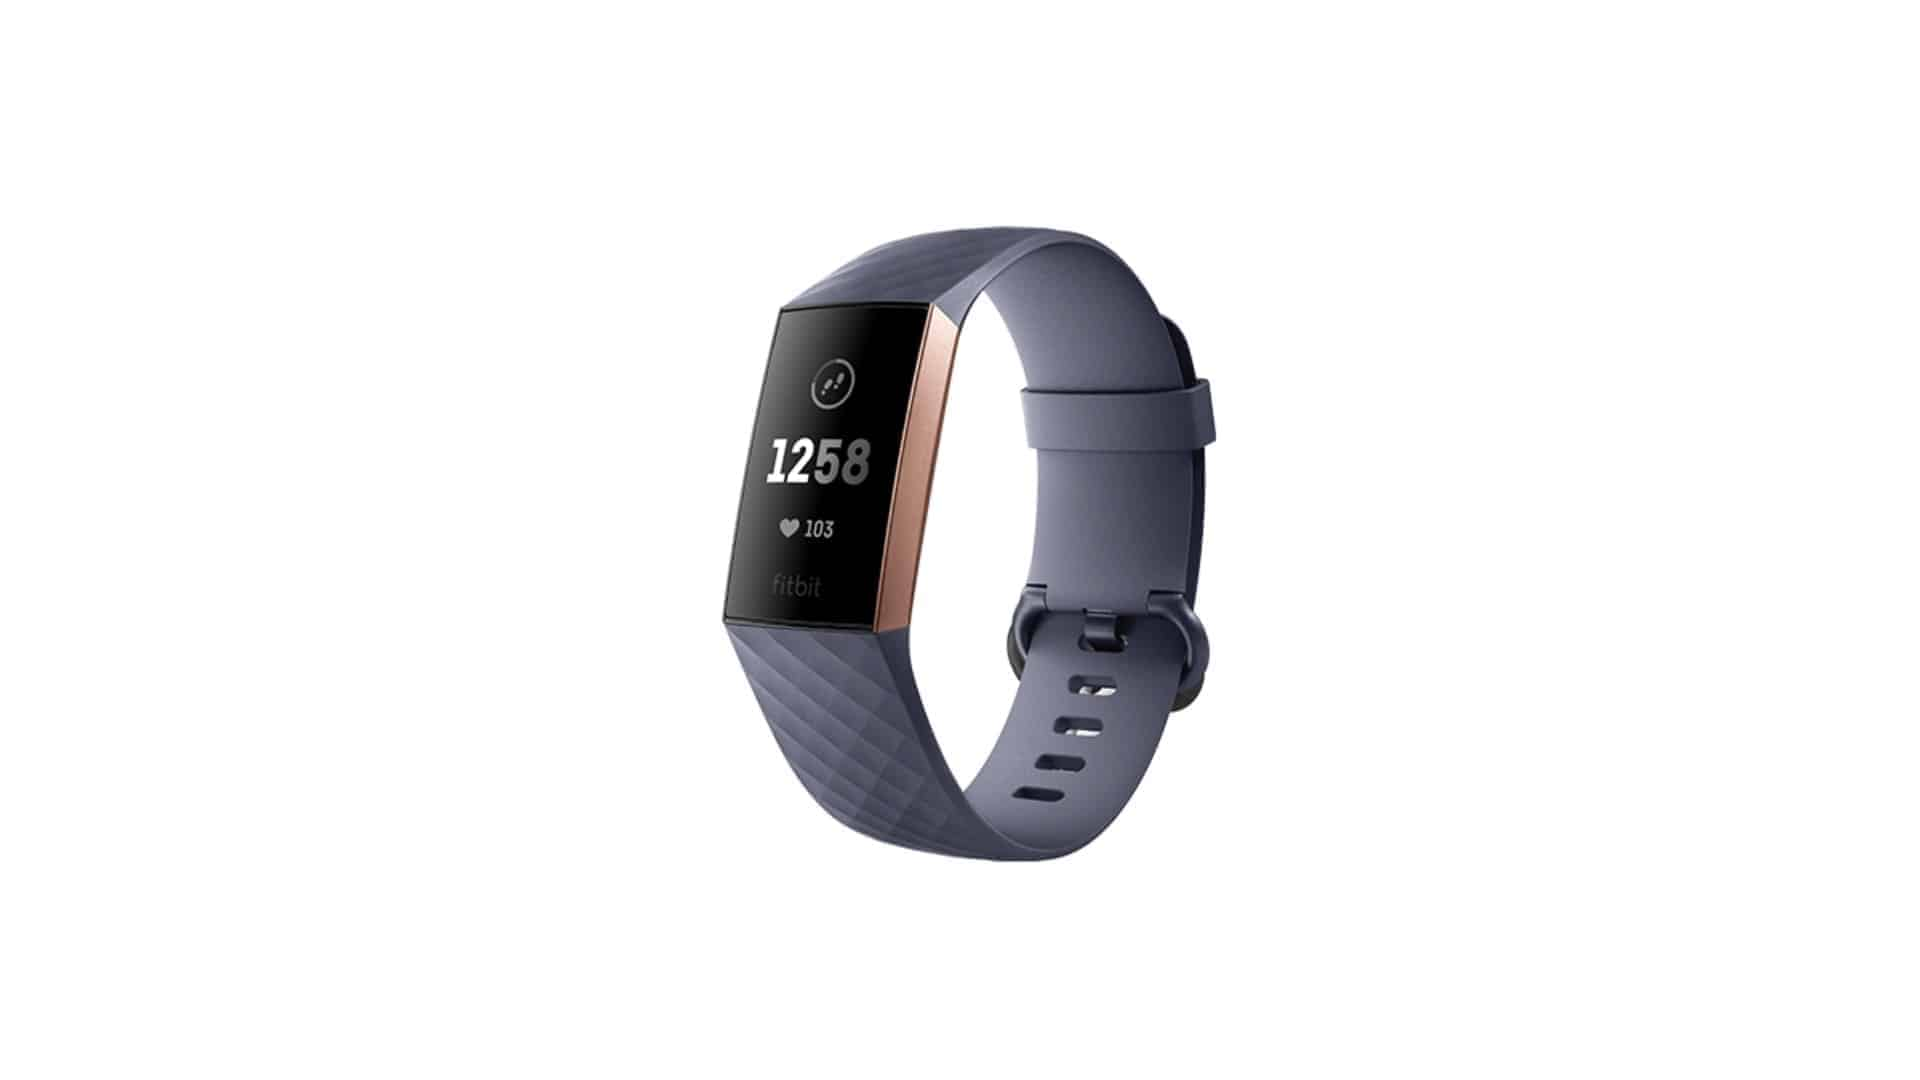 FitBit Heart Rate Monitor